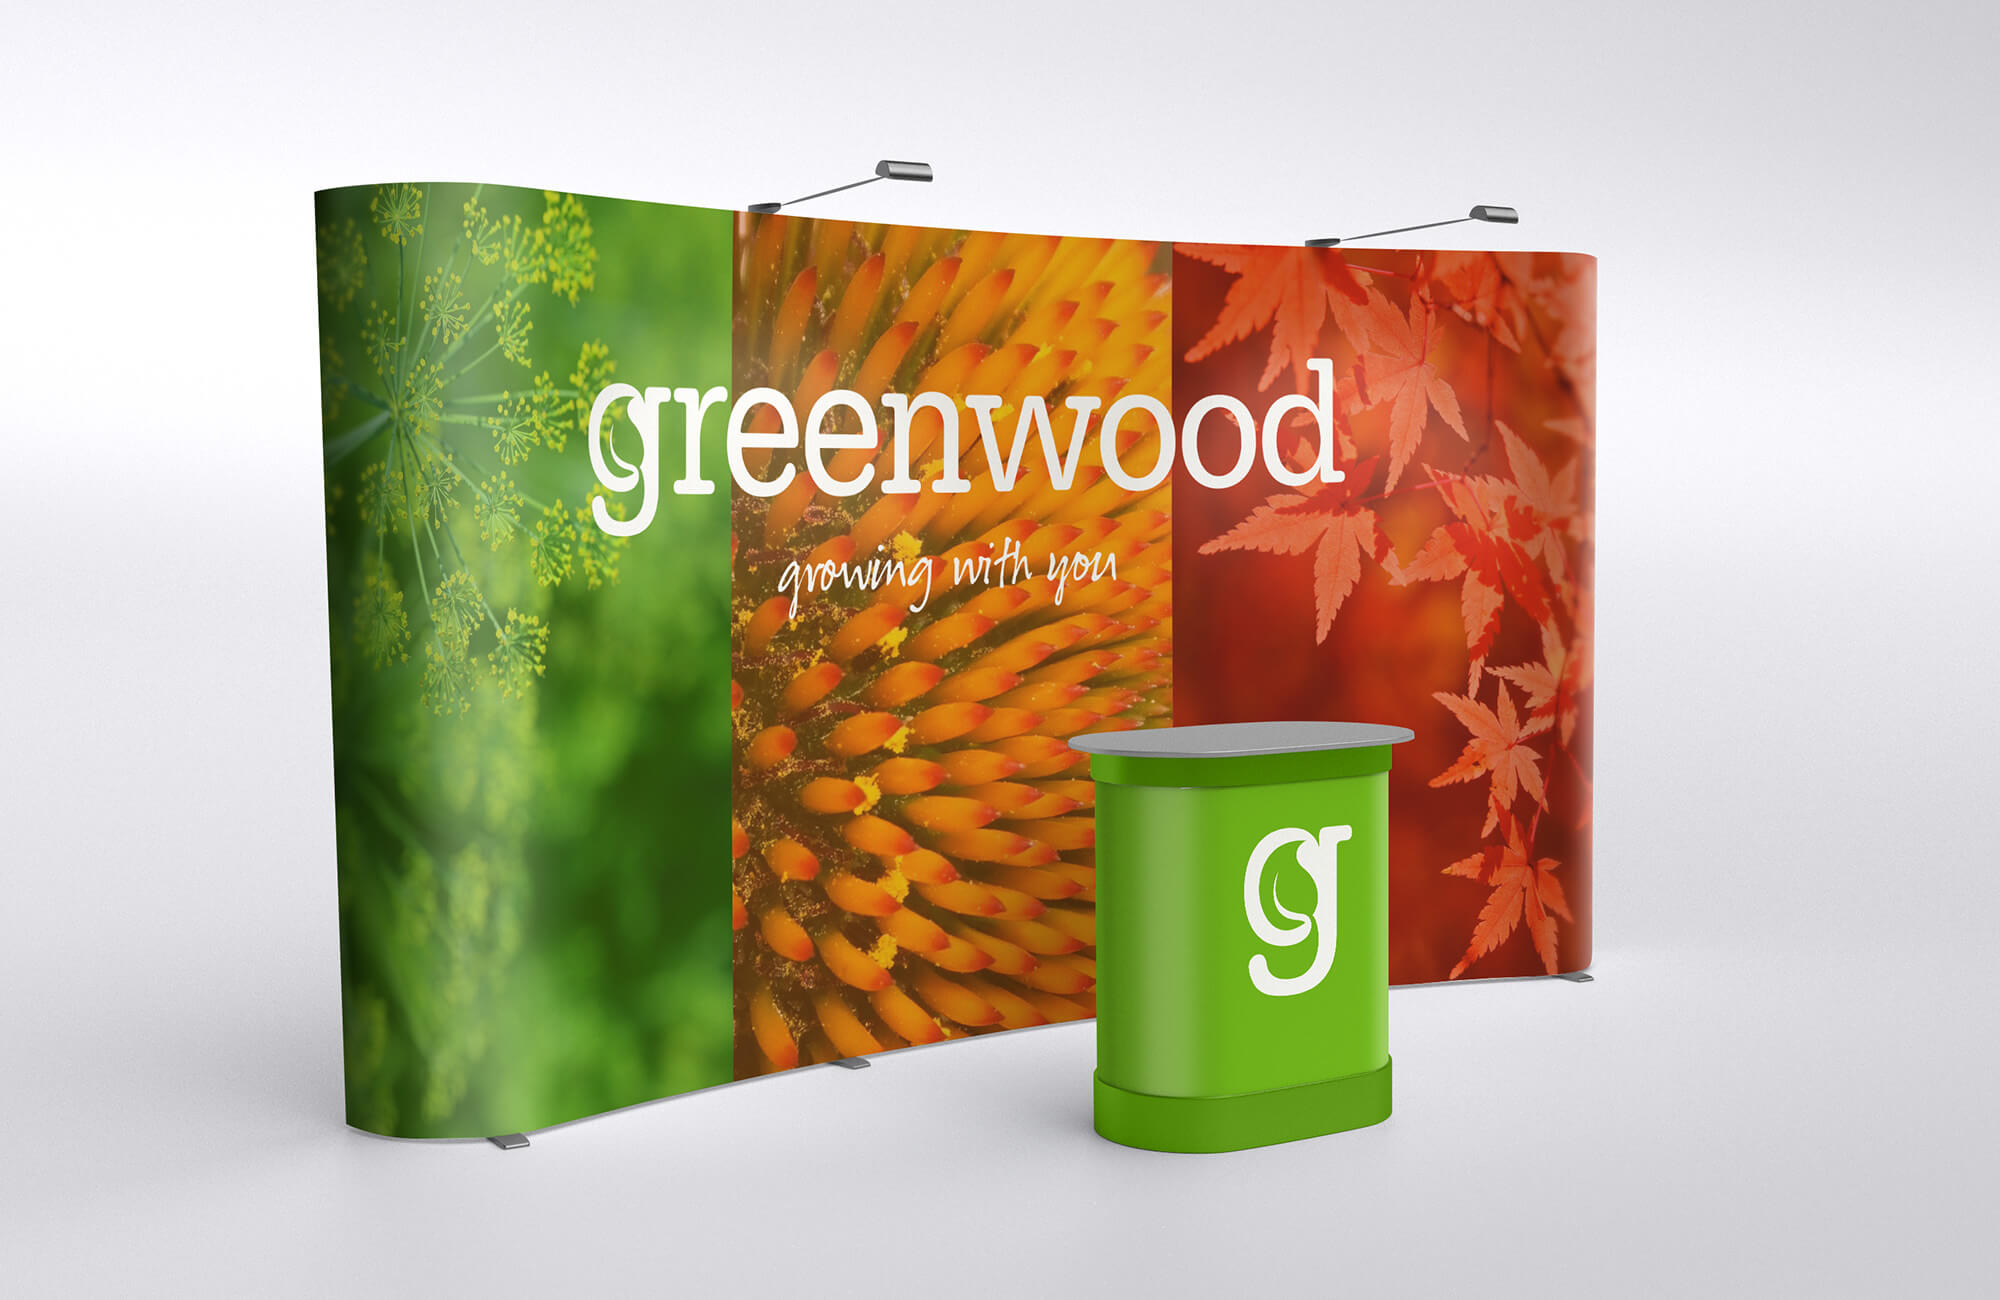 Greenwood Exhibition Banners and Podium